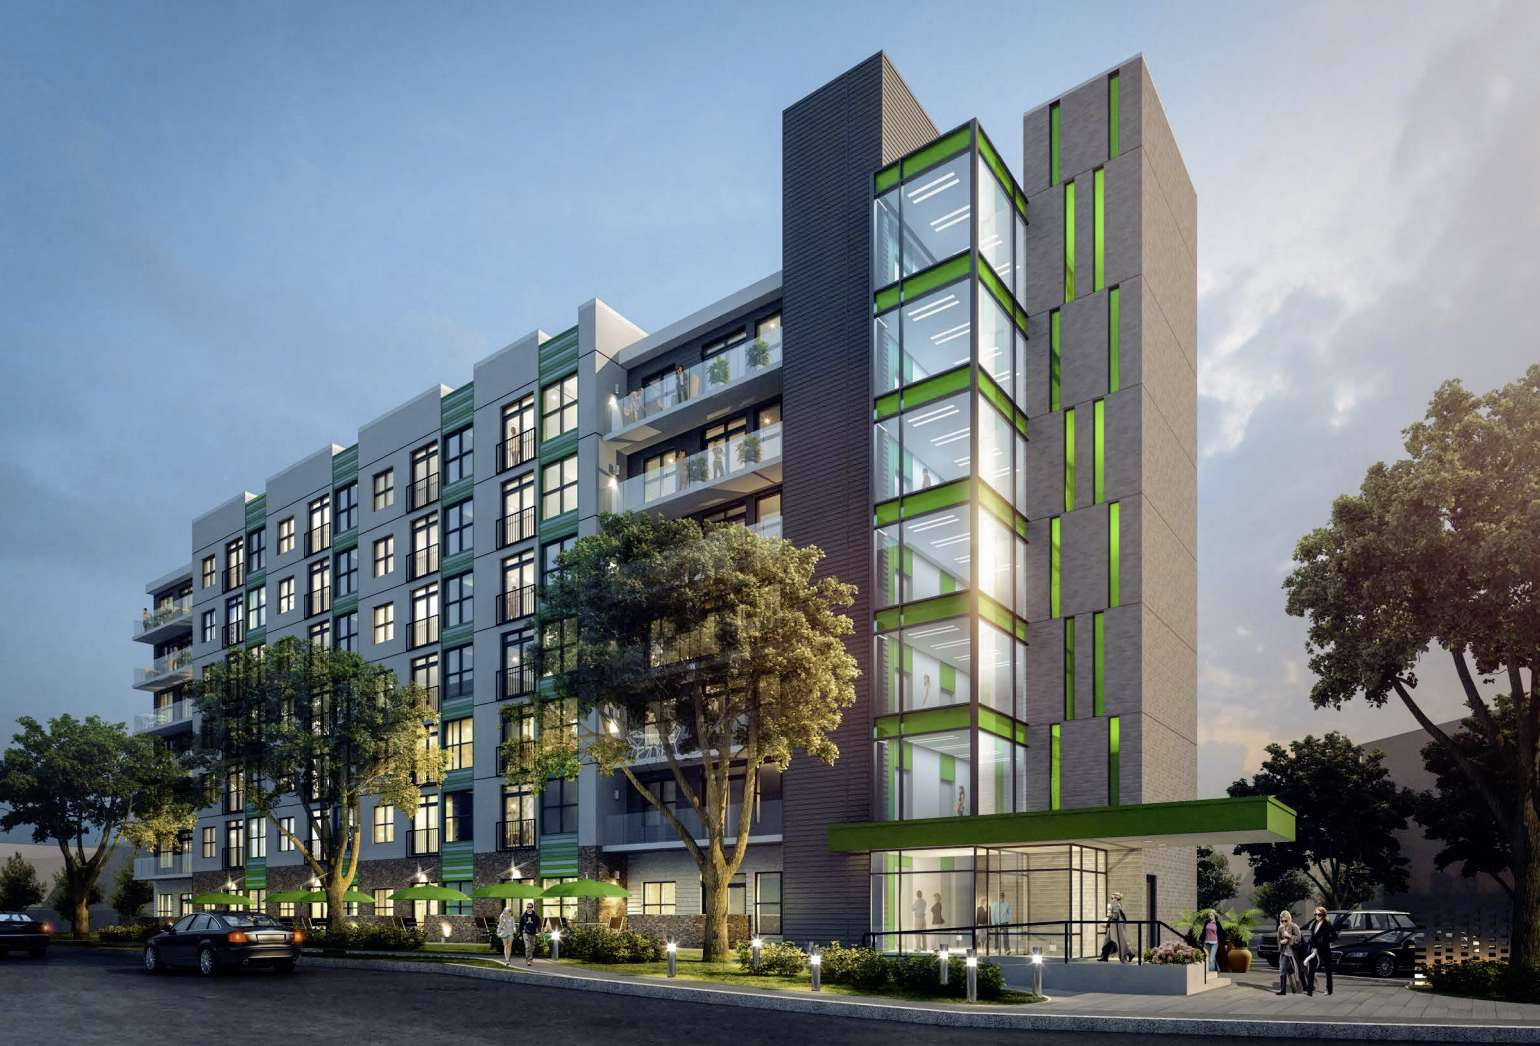 Artist rendering of the proposed seven-storey residential development on Roslyn Road.